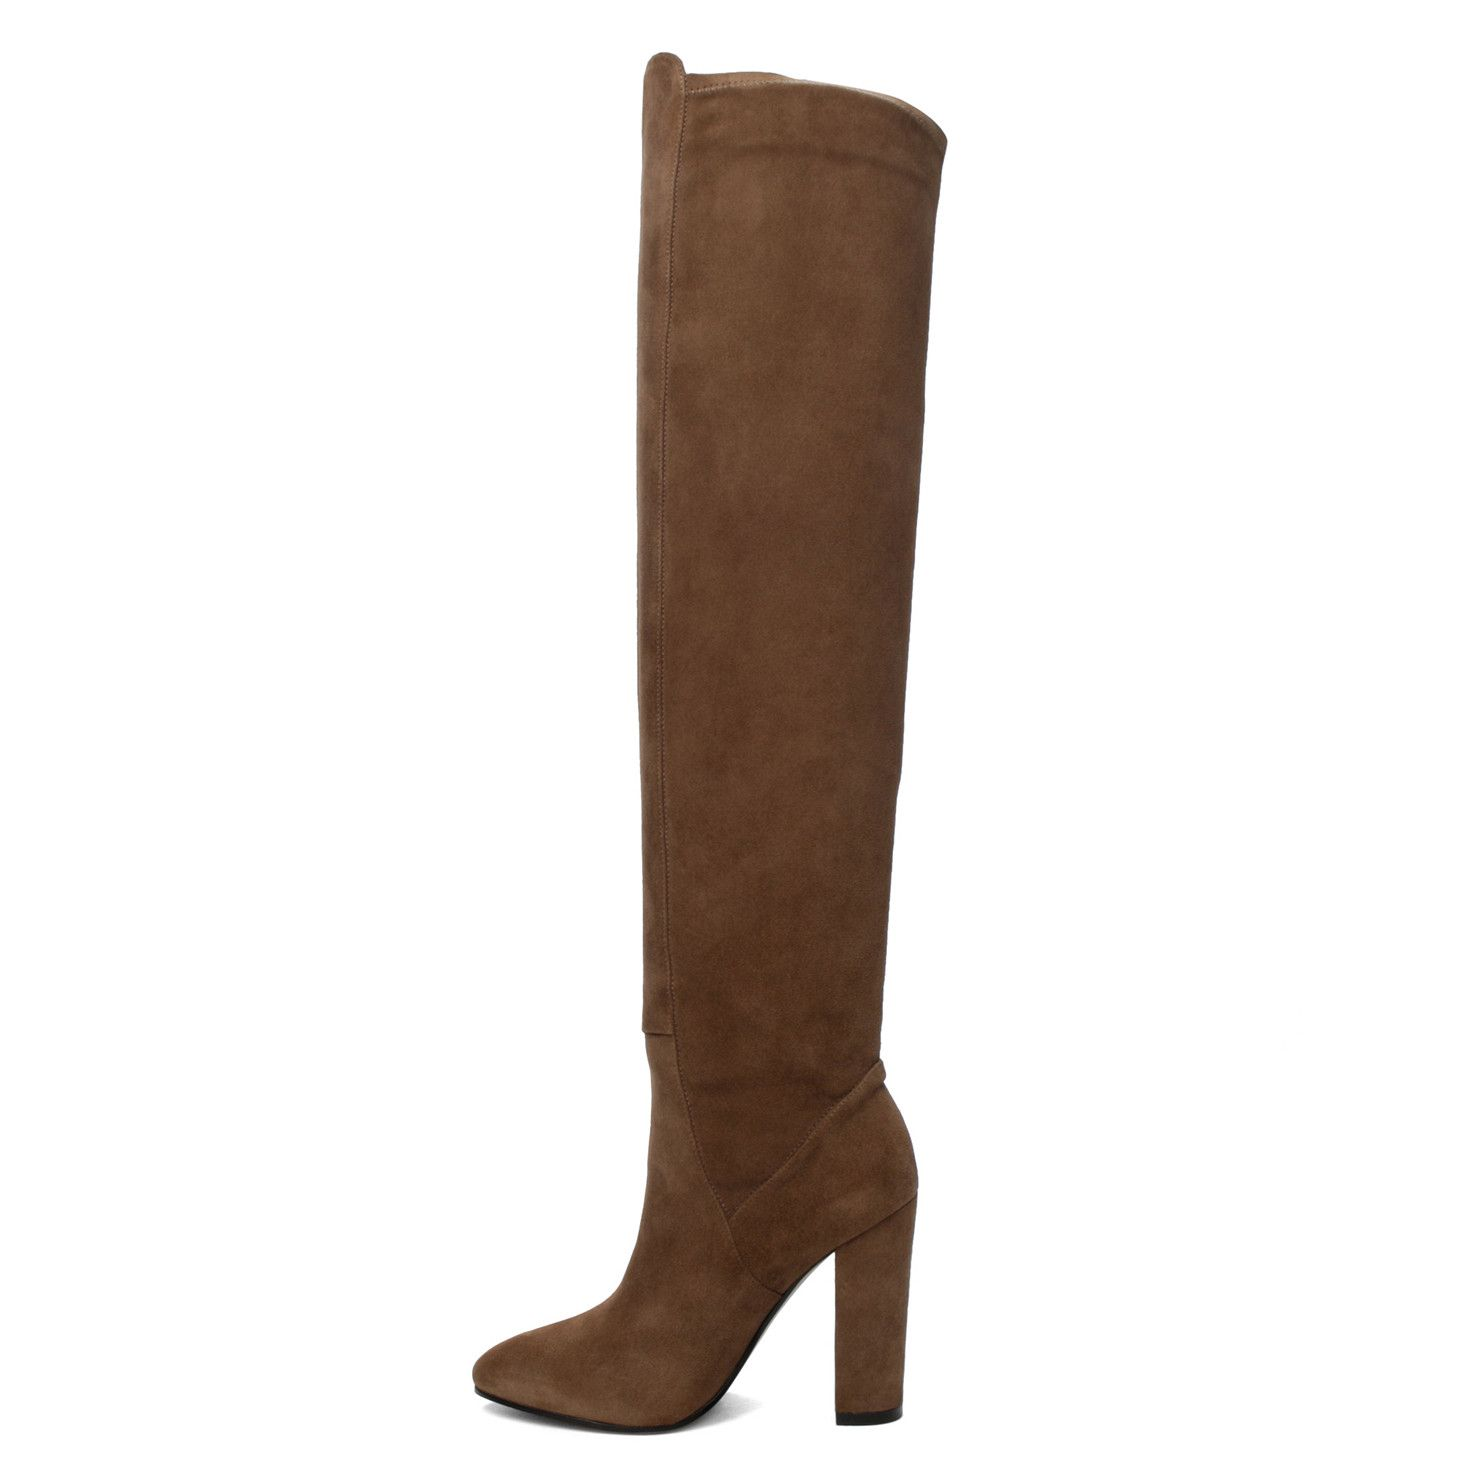 Antella Taupe Women's Over-the-knee boots